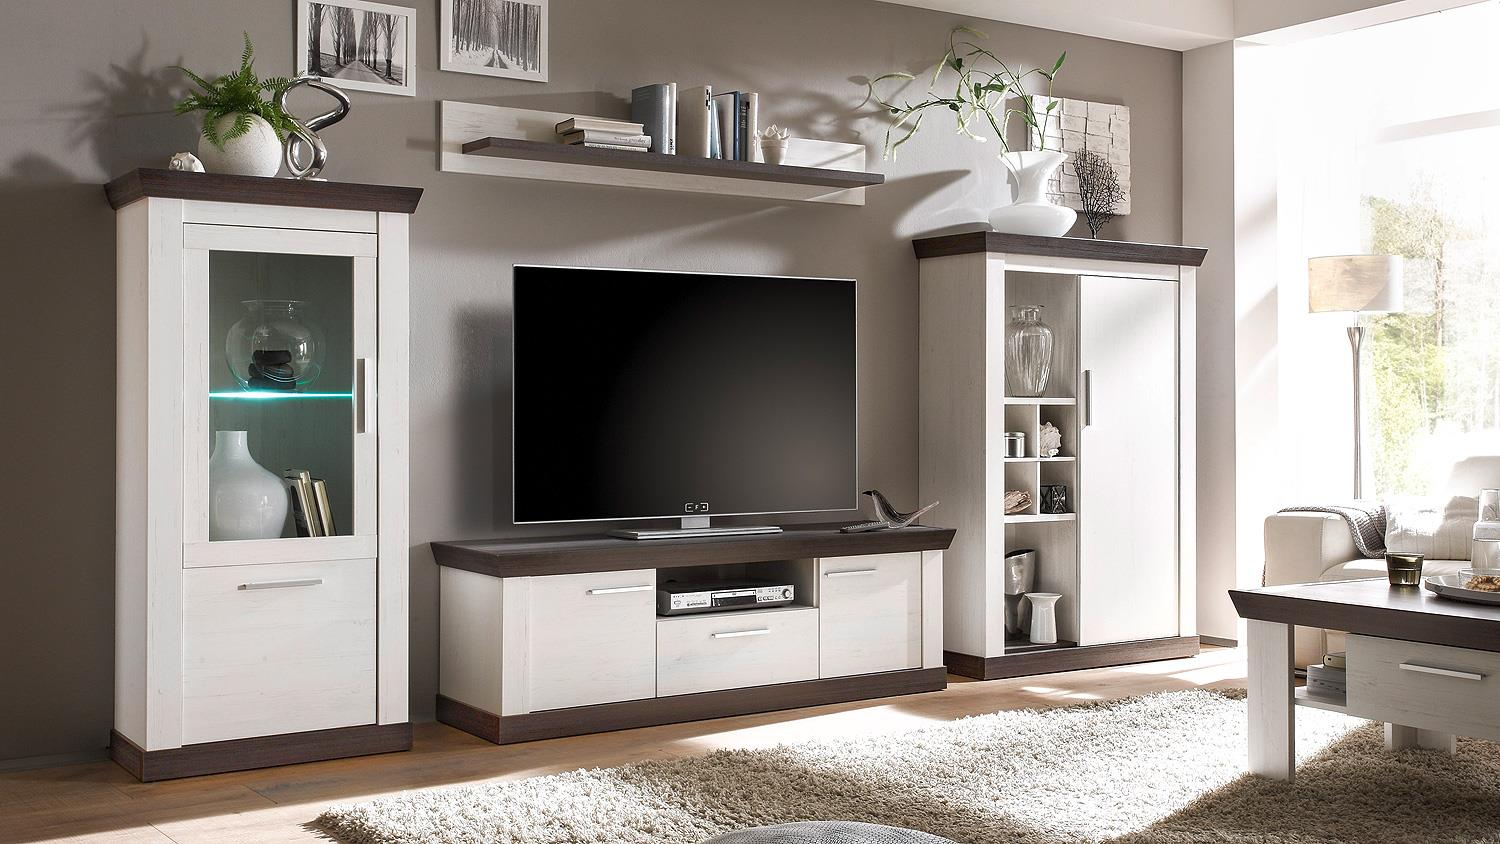 lowboard tiena tv board in pinie wei und wenge haptik 156. Black Bedroom Furniture Sets. Home Design Ideas